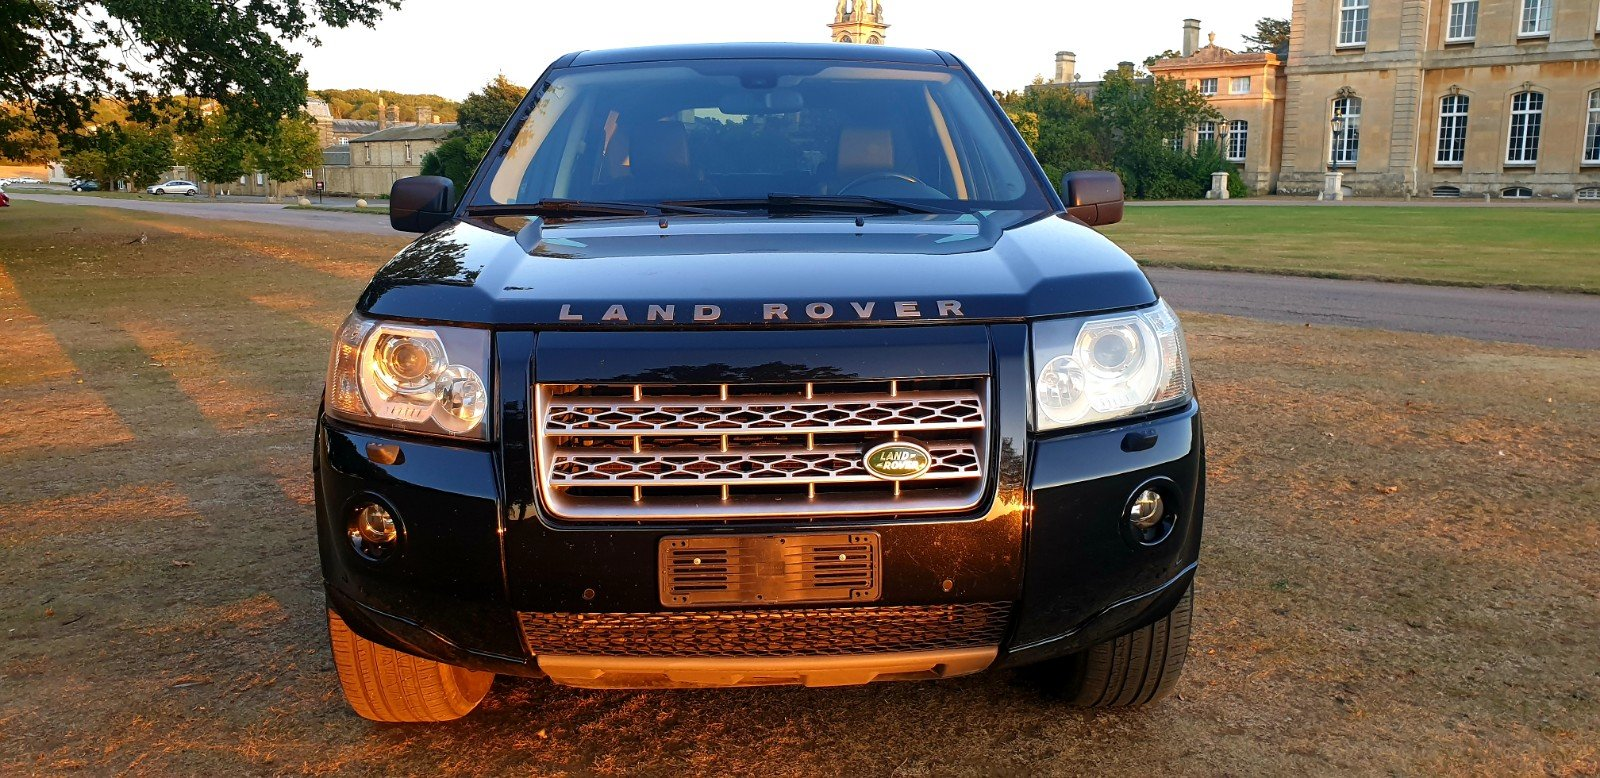 2008 LHD LAND ROVER FREELANDER 2.2 td4 LEFT HAND DRIVE For Sale (picture 2 of 6)